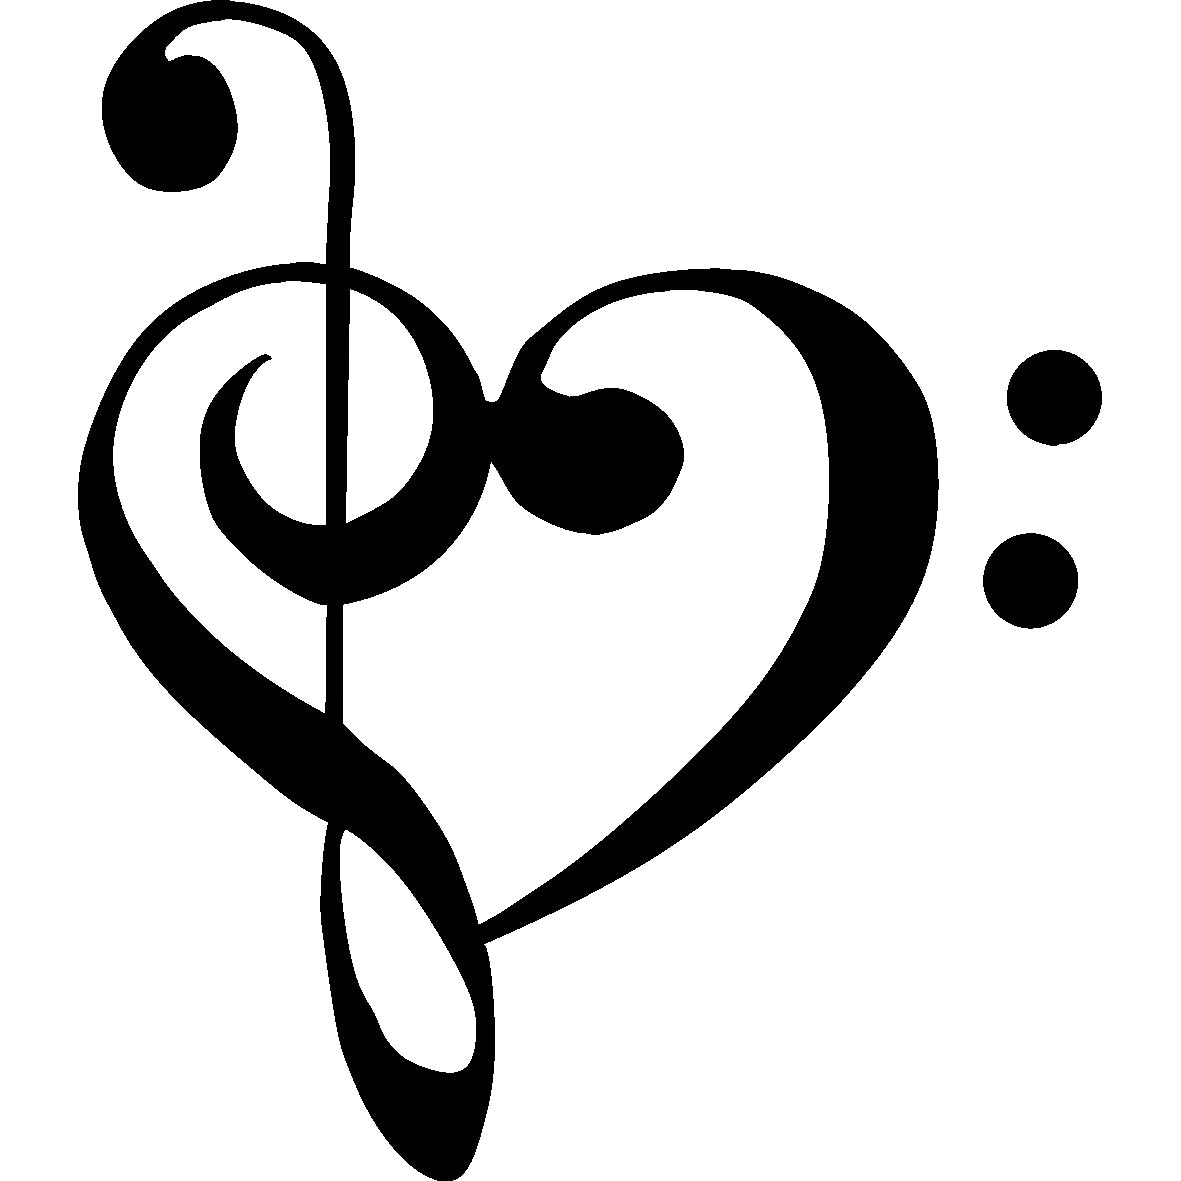 Fantastic Wallpaper Music Heart - music-notes-heart-wallpaper-CleftHeart  Graphic_846048.png